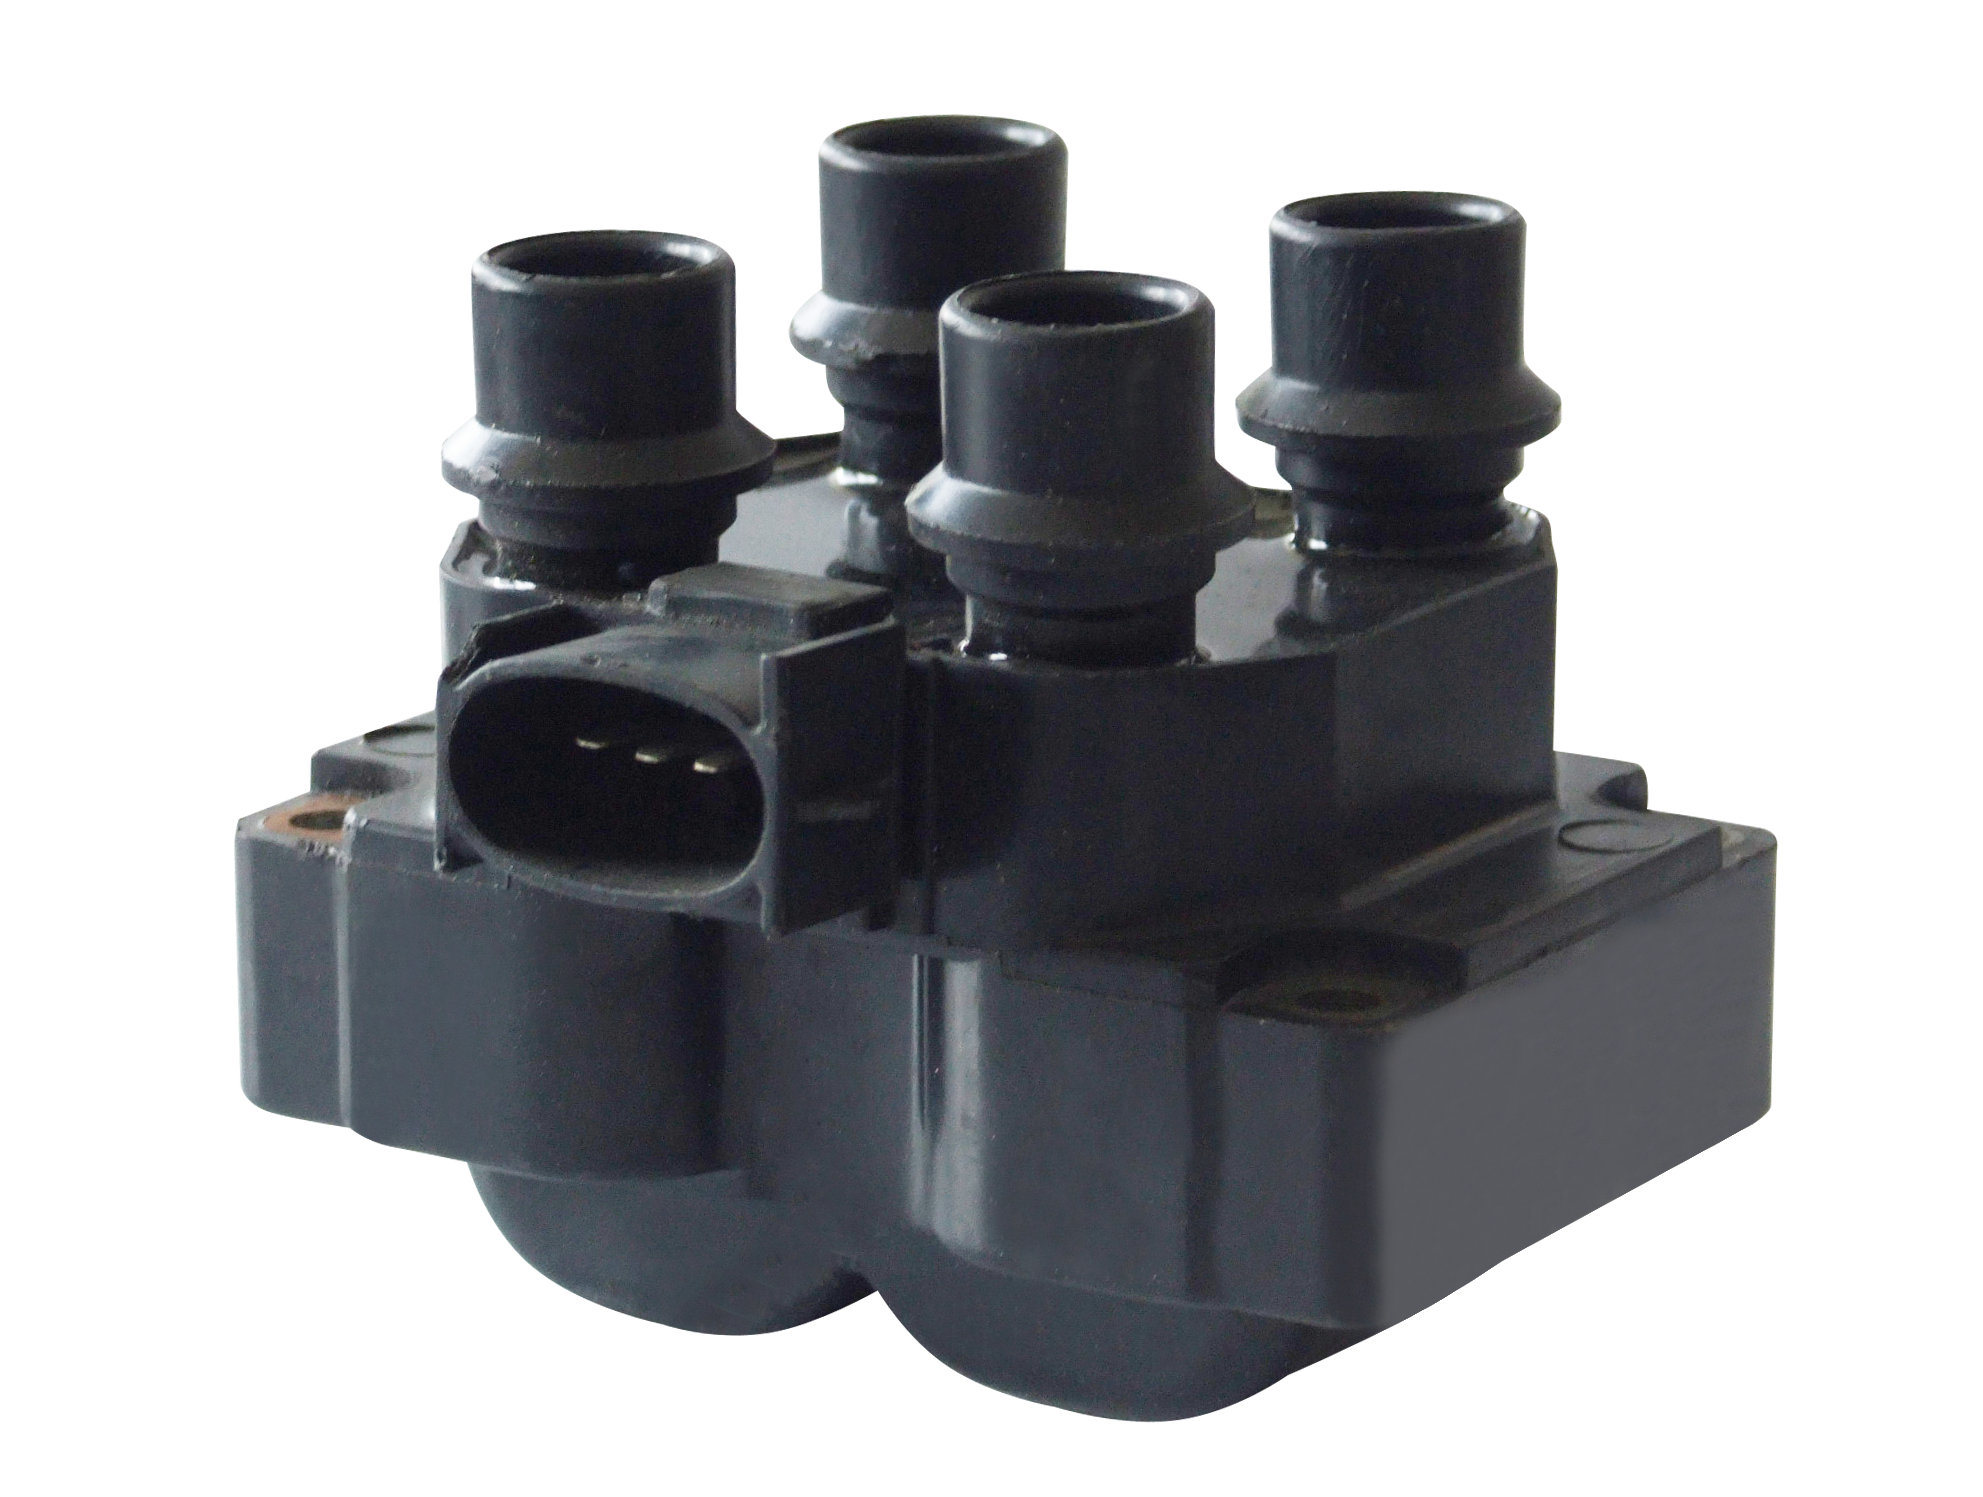 China Ignition Coil Hy0608 China Ignition Coil